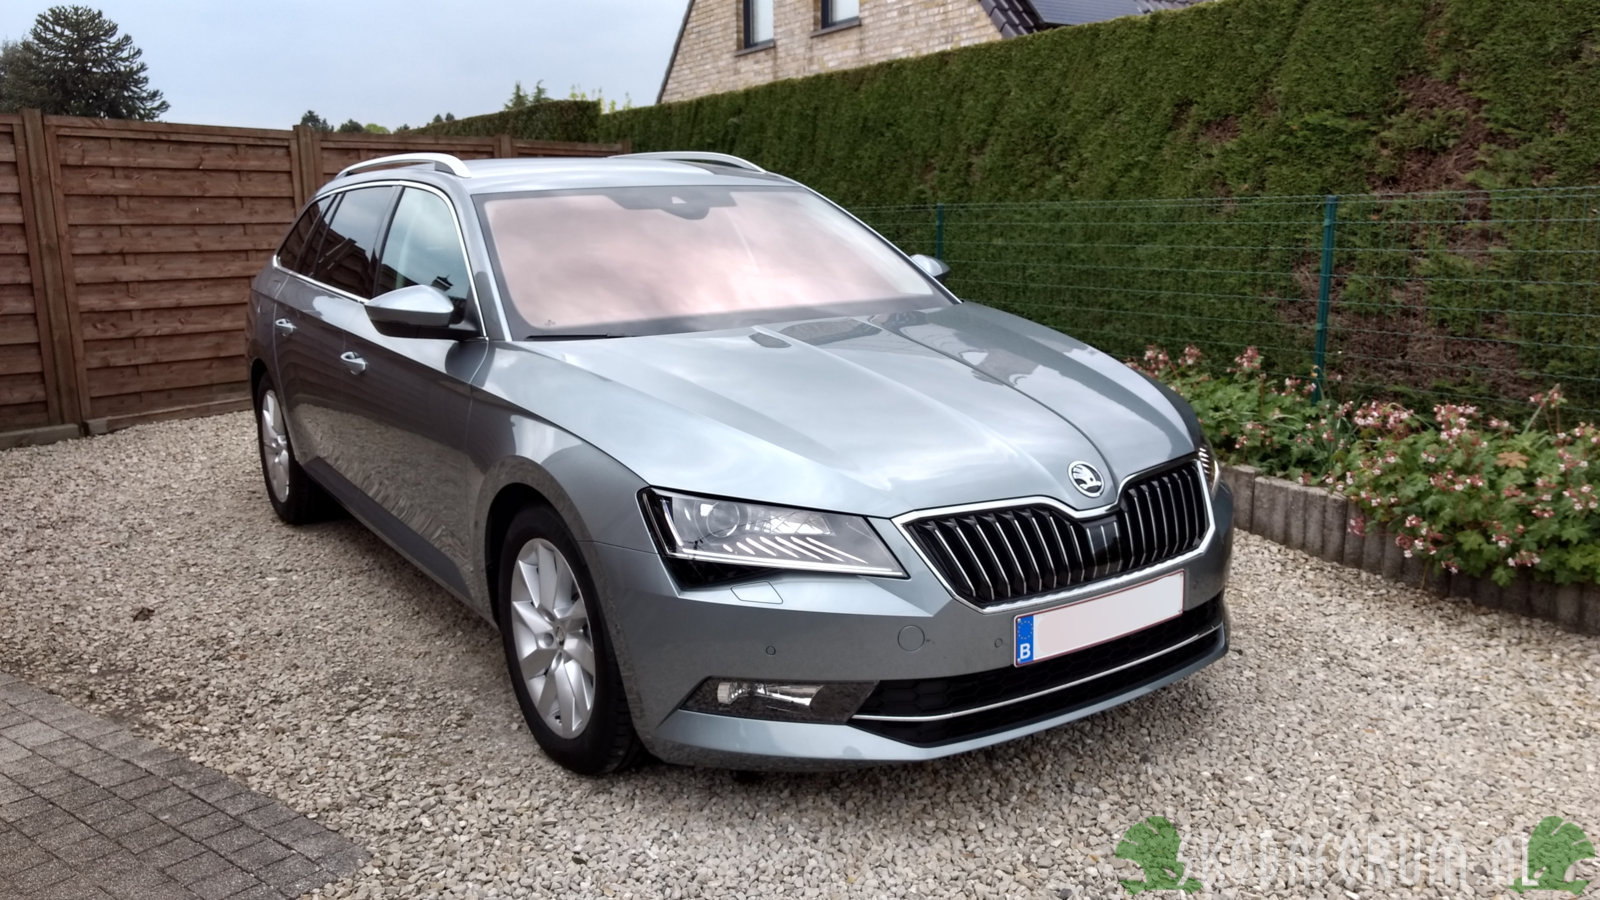 Skoda Octavia Greenline 3 Superb Iii Combi Greenline Business Grey Stratos Velgen